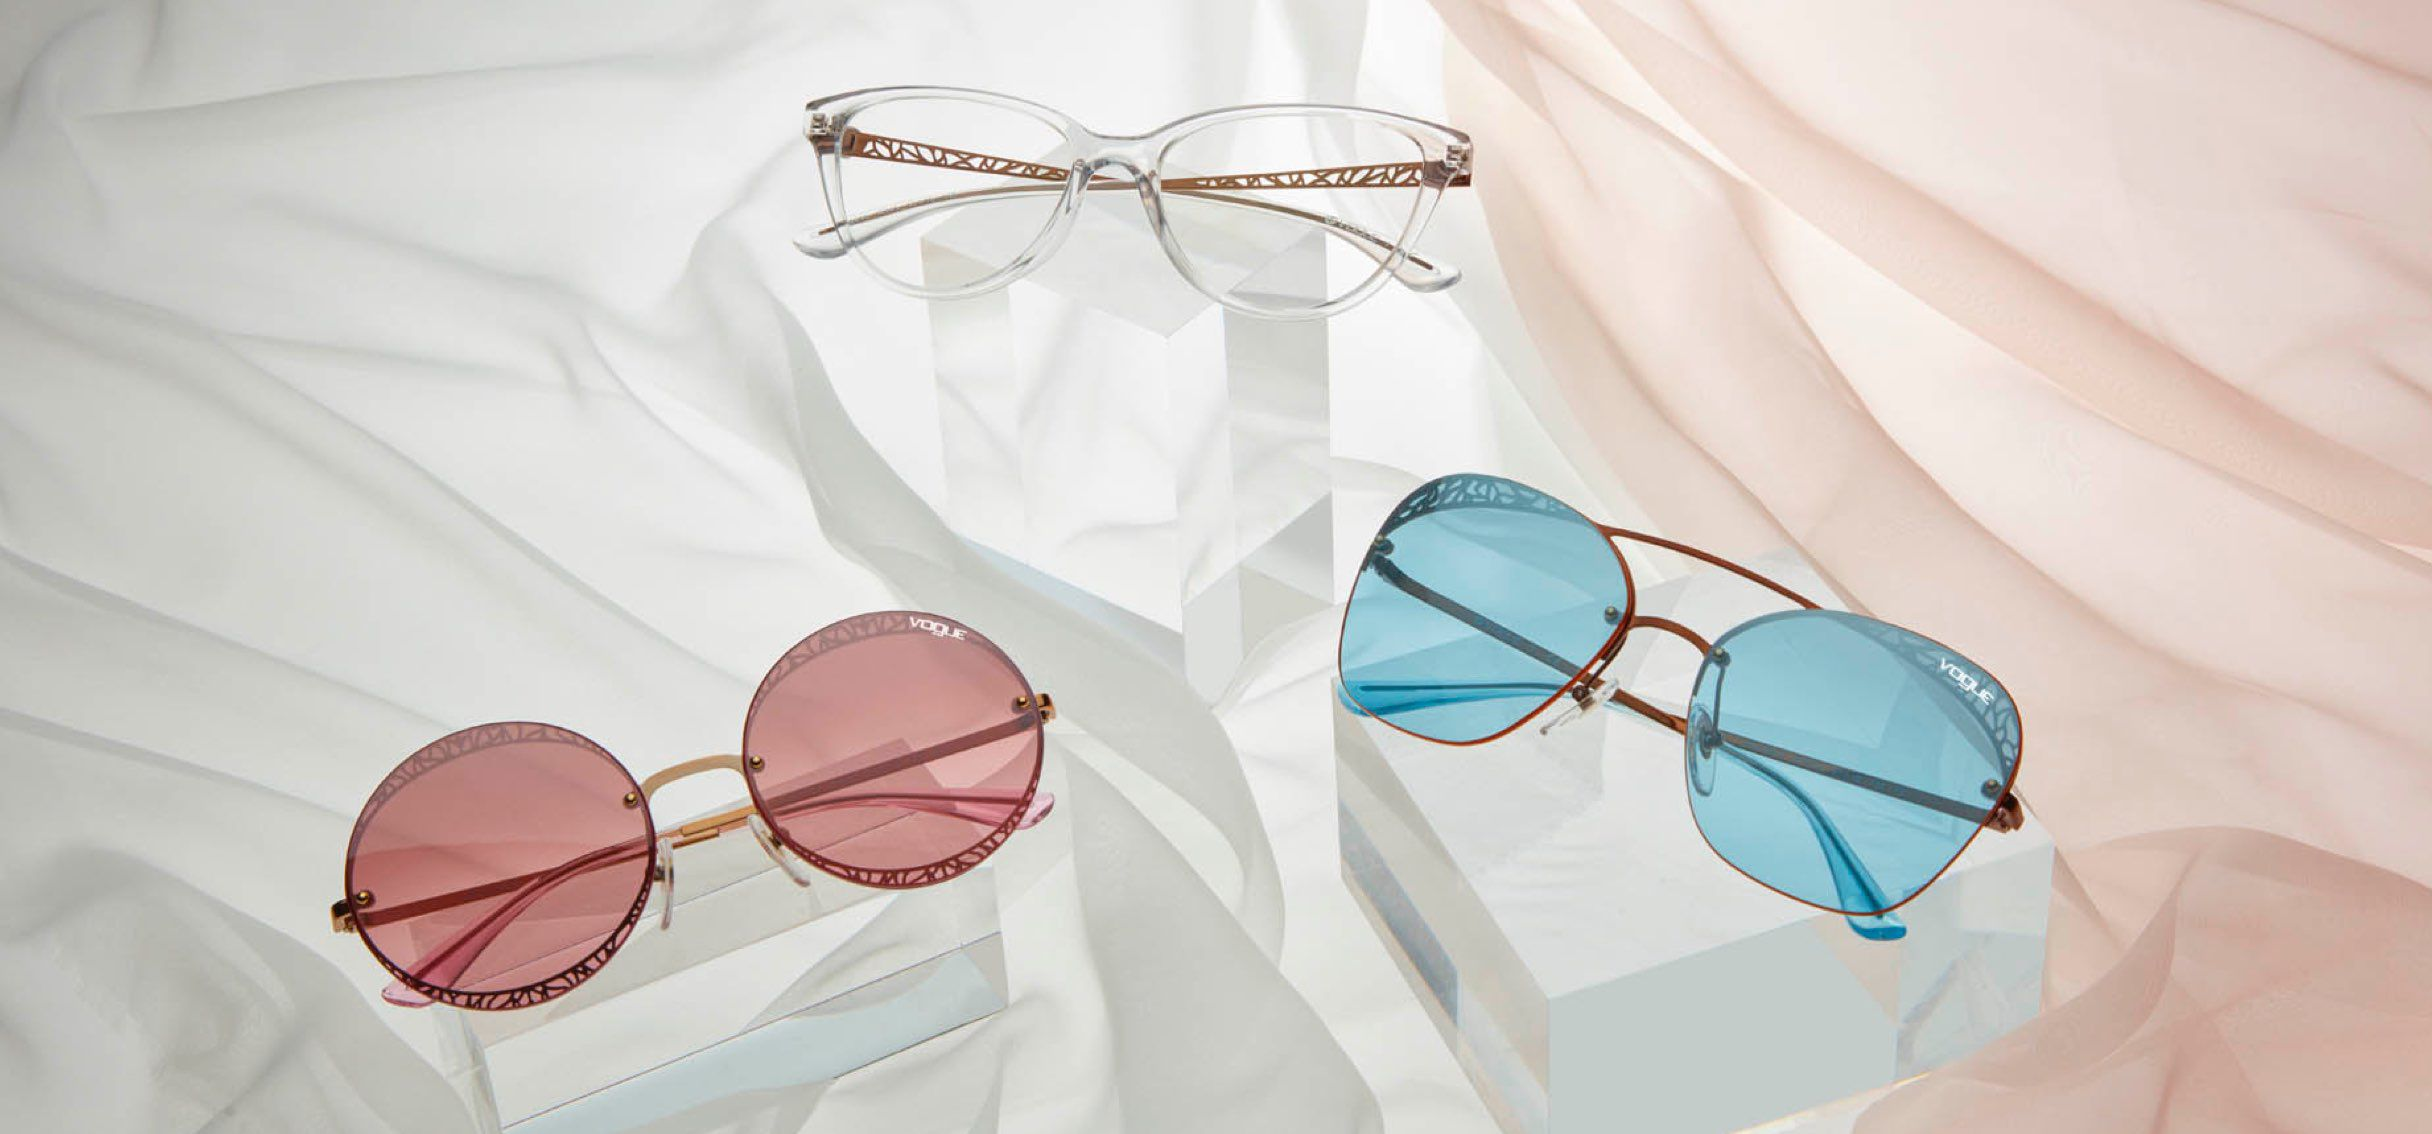 7515ebbc1e43 Now you see me, now you don't. Play with your style in ultra-feminine  frames featuring subtle lace and textured details.